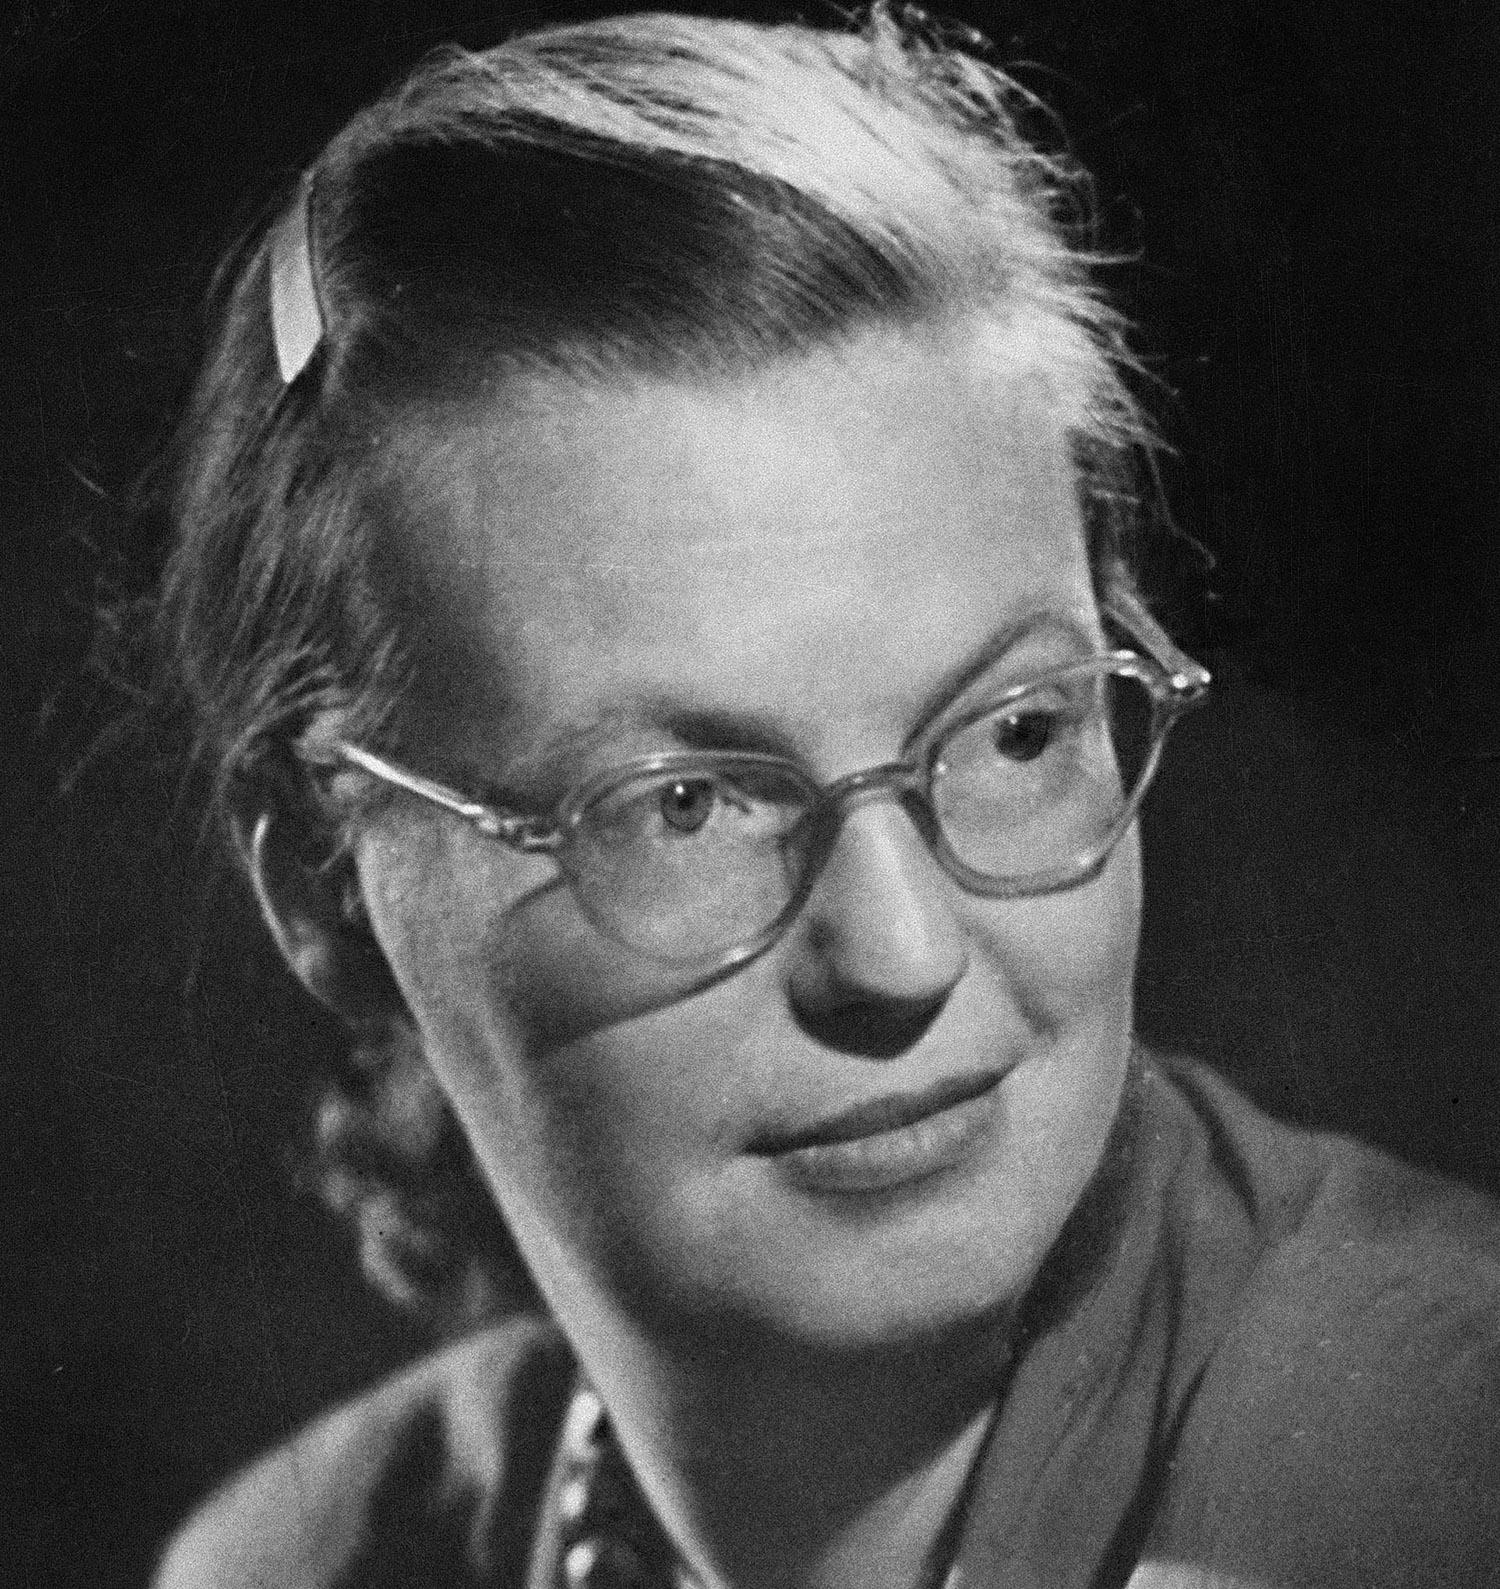 rediscovering shirley jackson vermont public radio two collections of shirley jackson s essays about her life raising a family in vermont are being republished this year